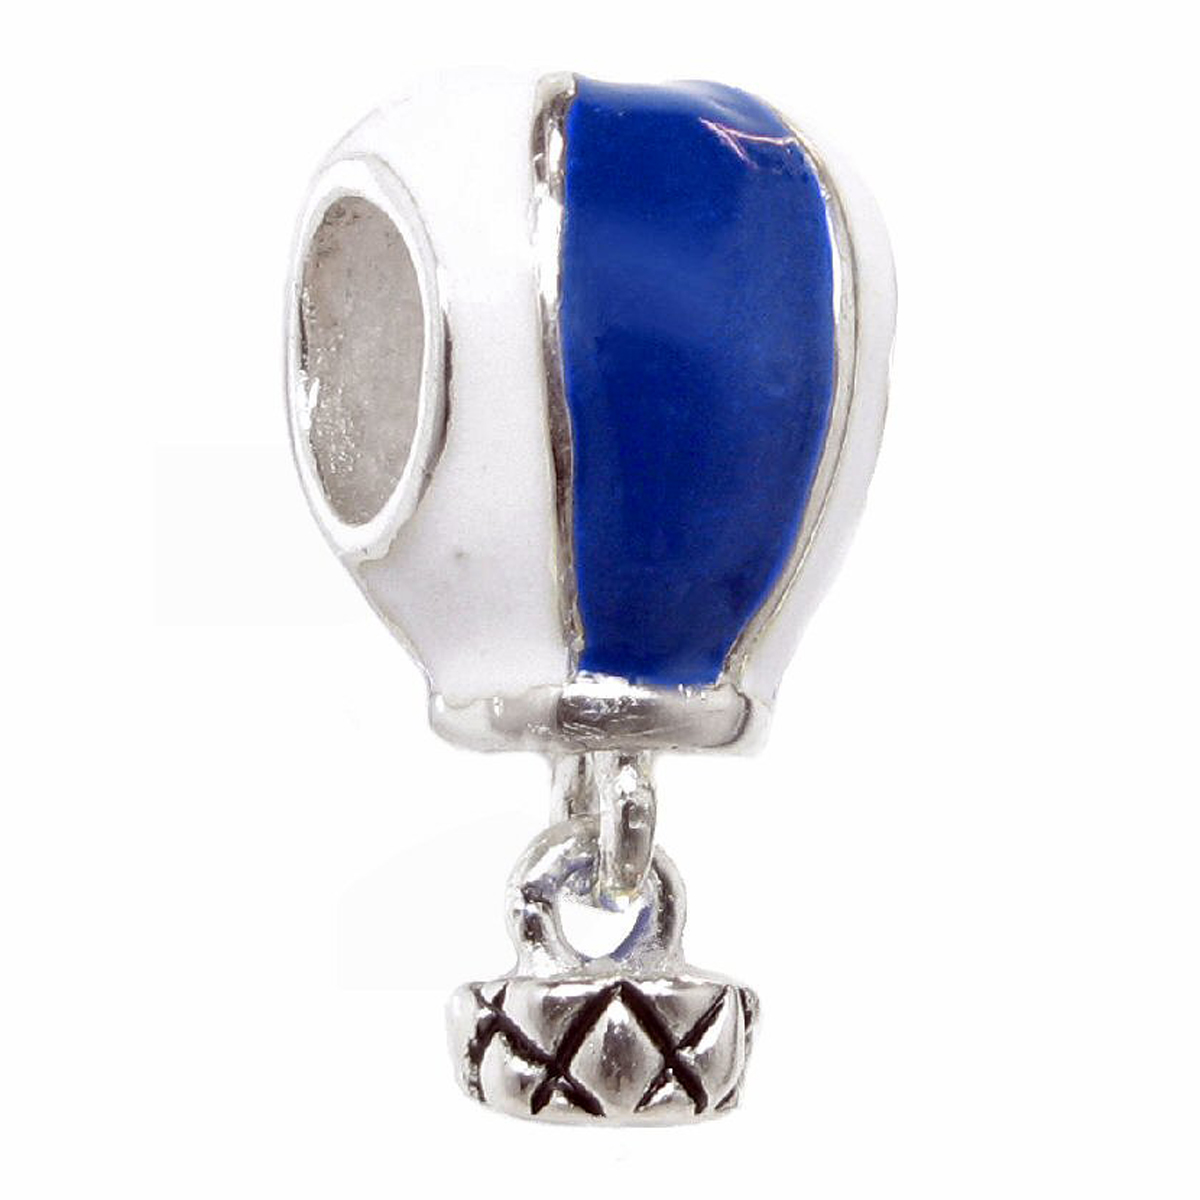 82131f6b1 Sterling Silver Blue And White Hot Air Balloon Travel Dangle Bead For  Pandora Troll Chamilia Biagi European Charm Bracelets